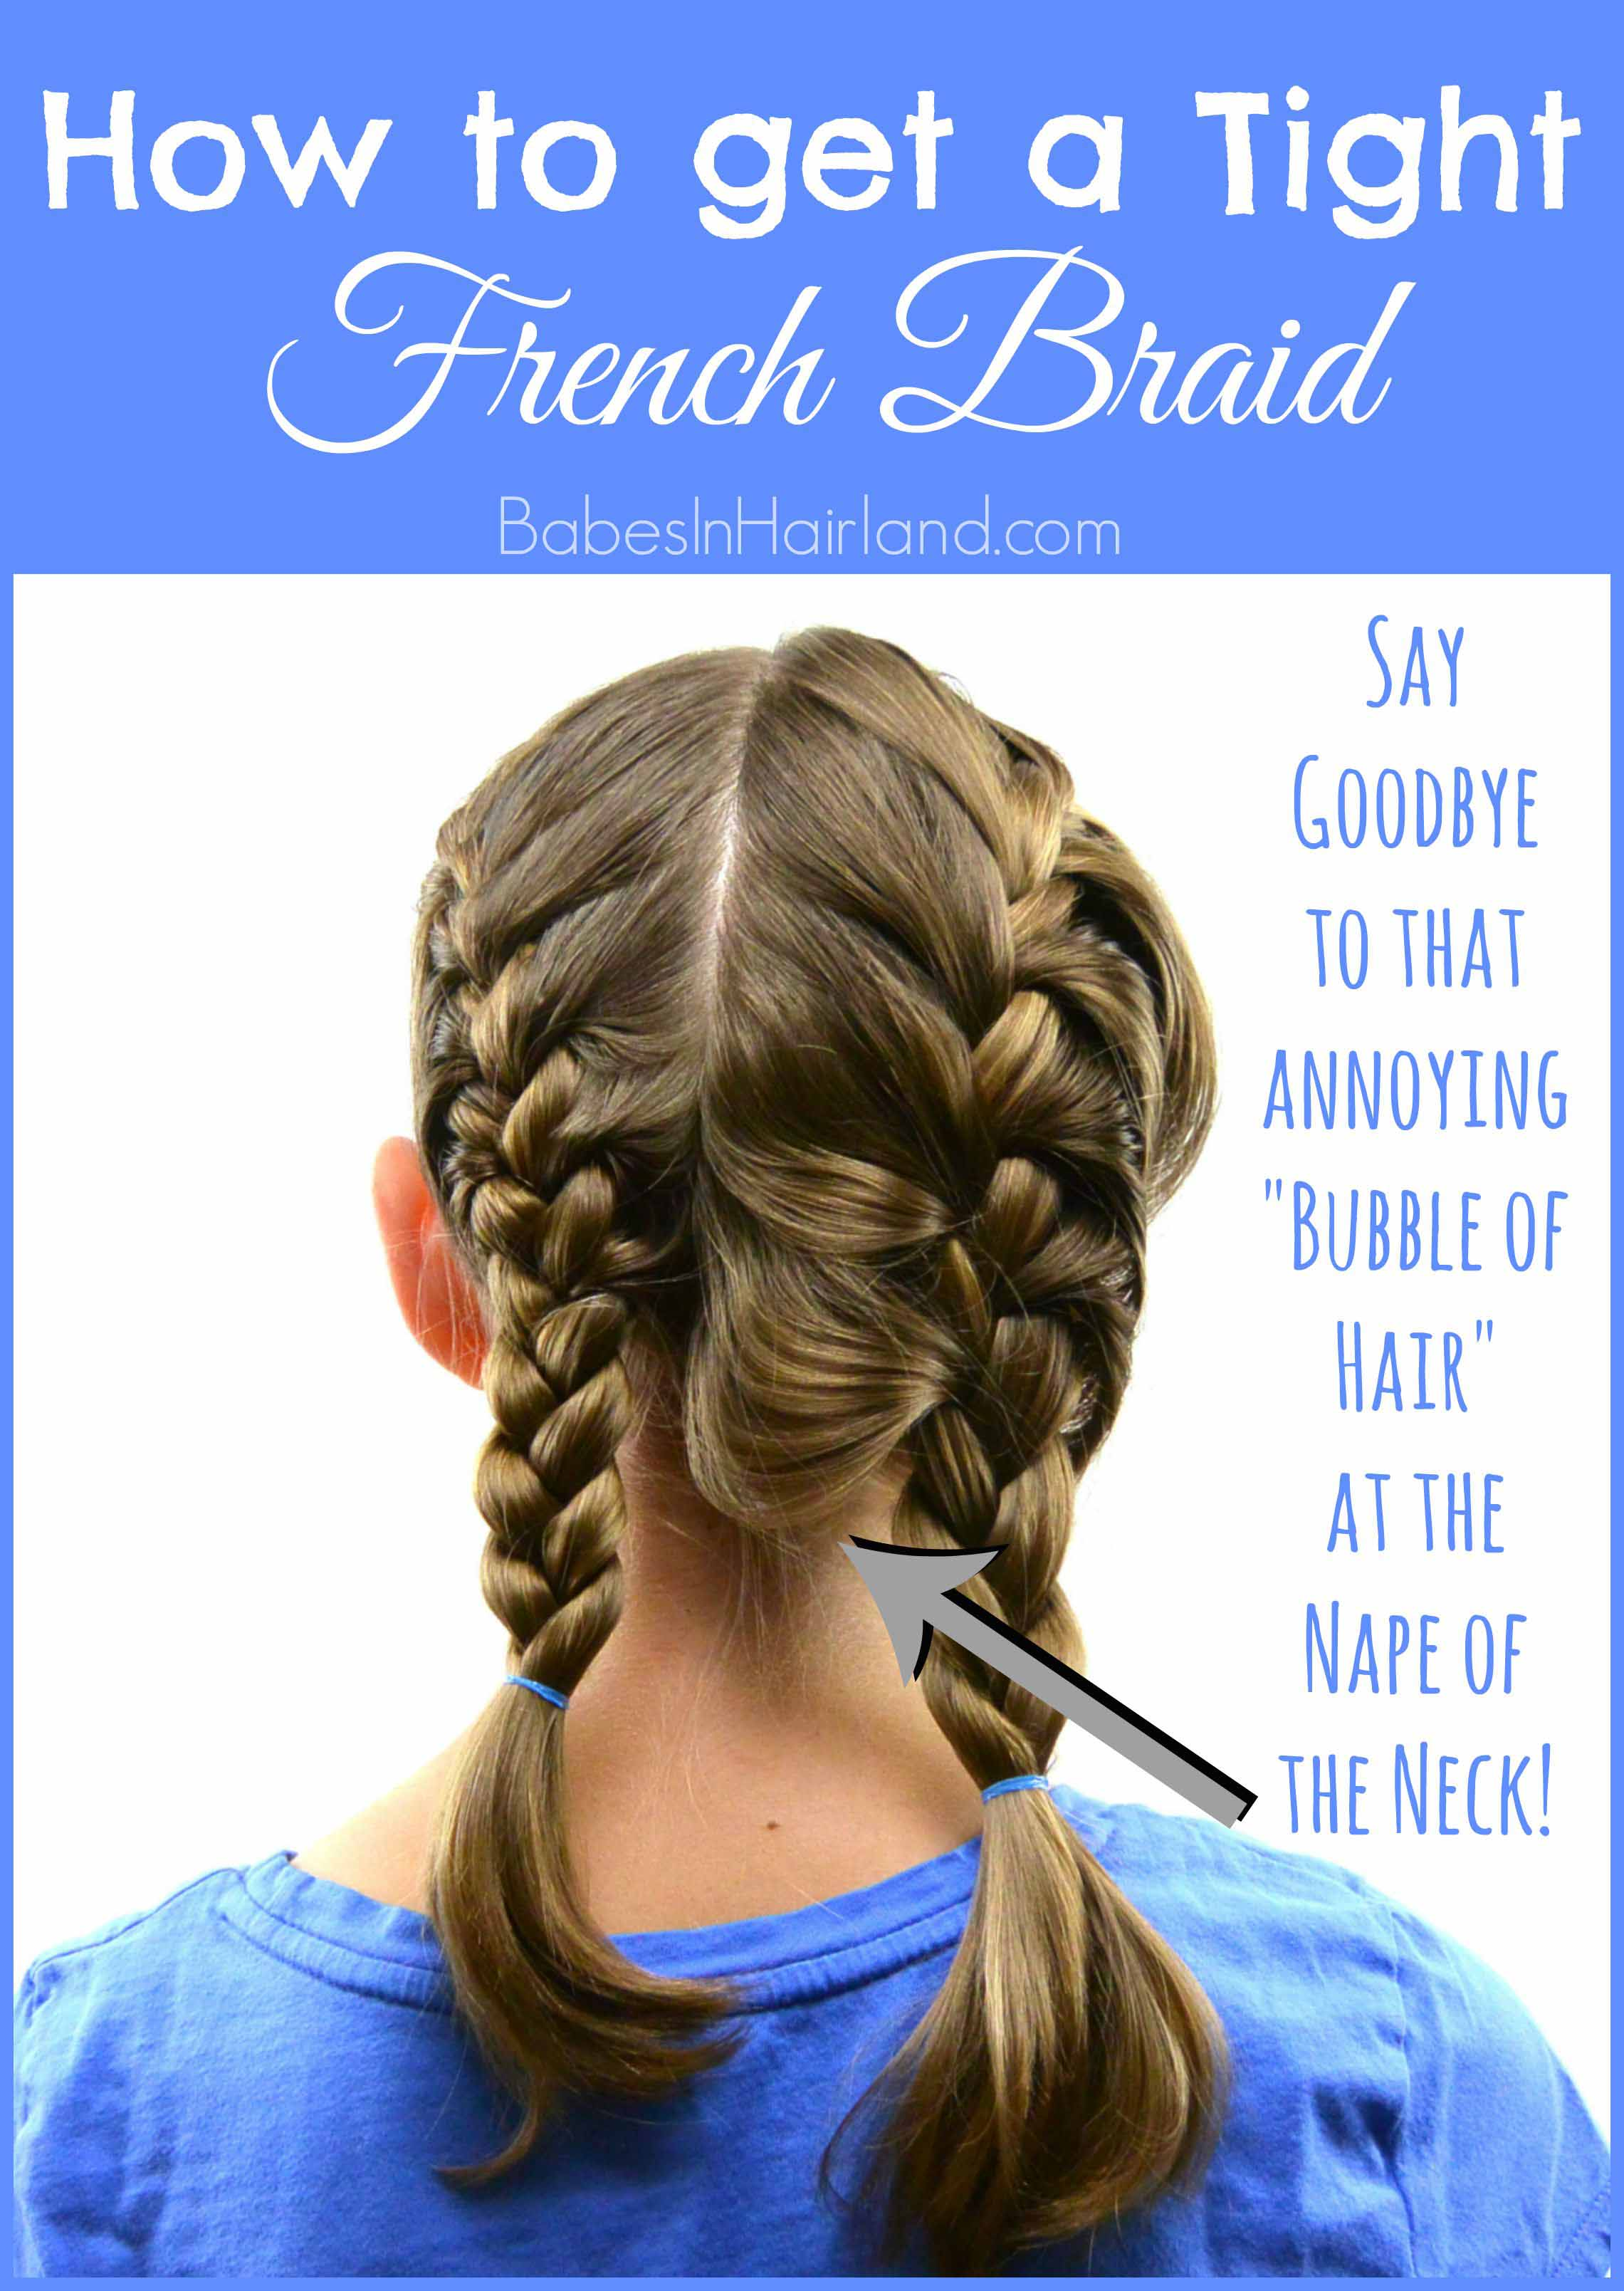 For Starters, We Created A Loose French Braid On The Right Side Of The  Head If That's The Look You Prefer Or Are Normally Going For, Then Great,